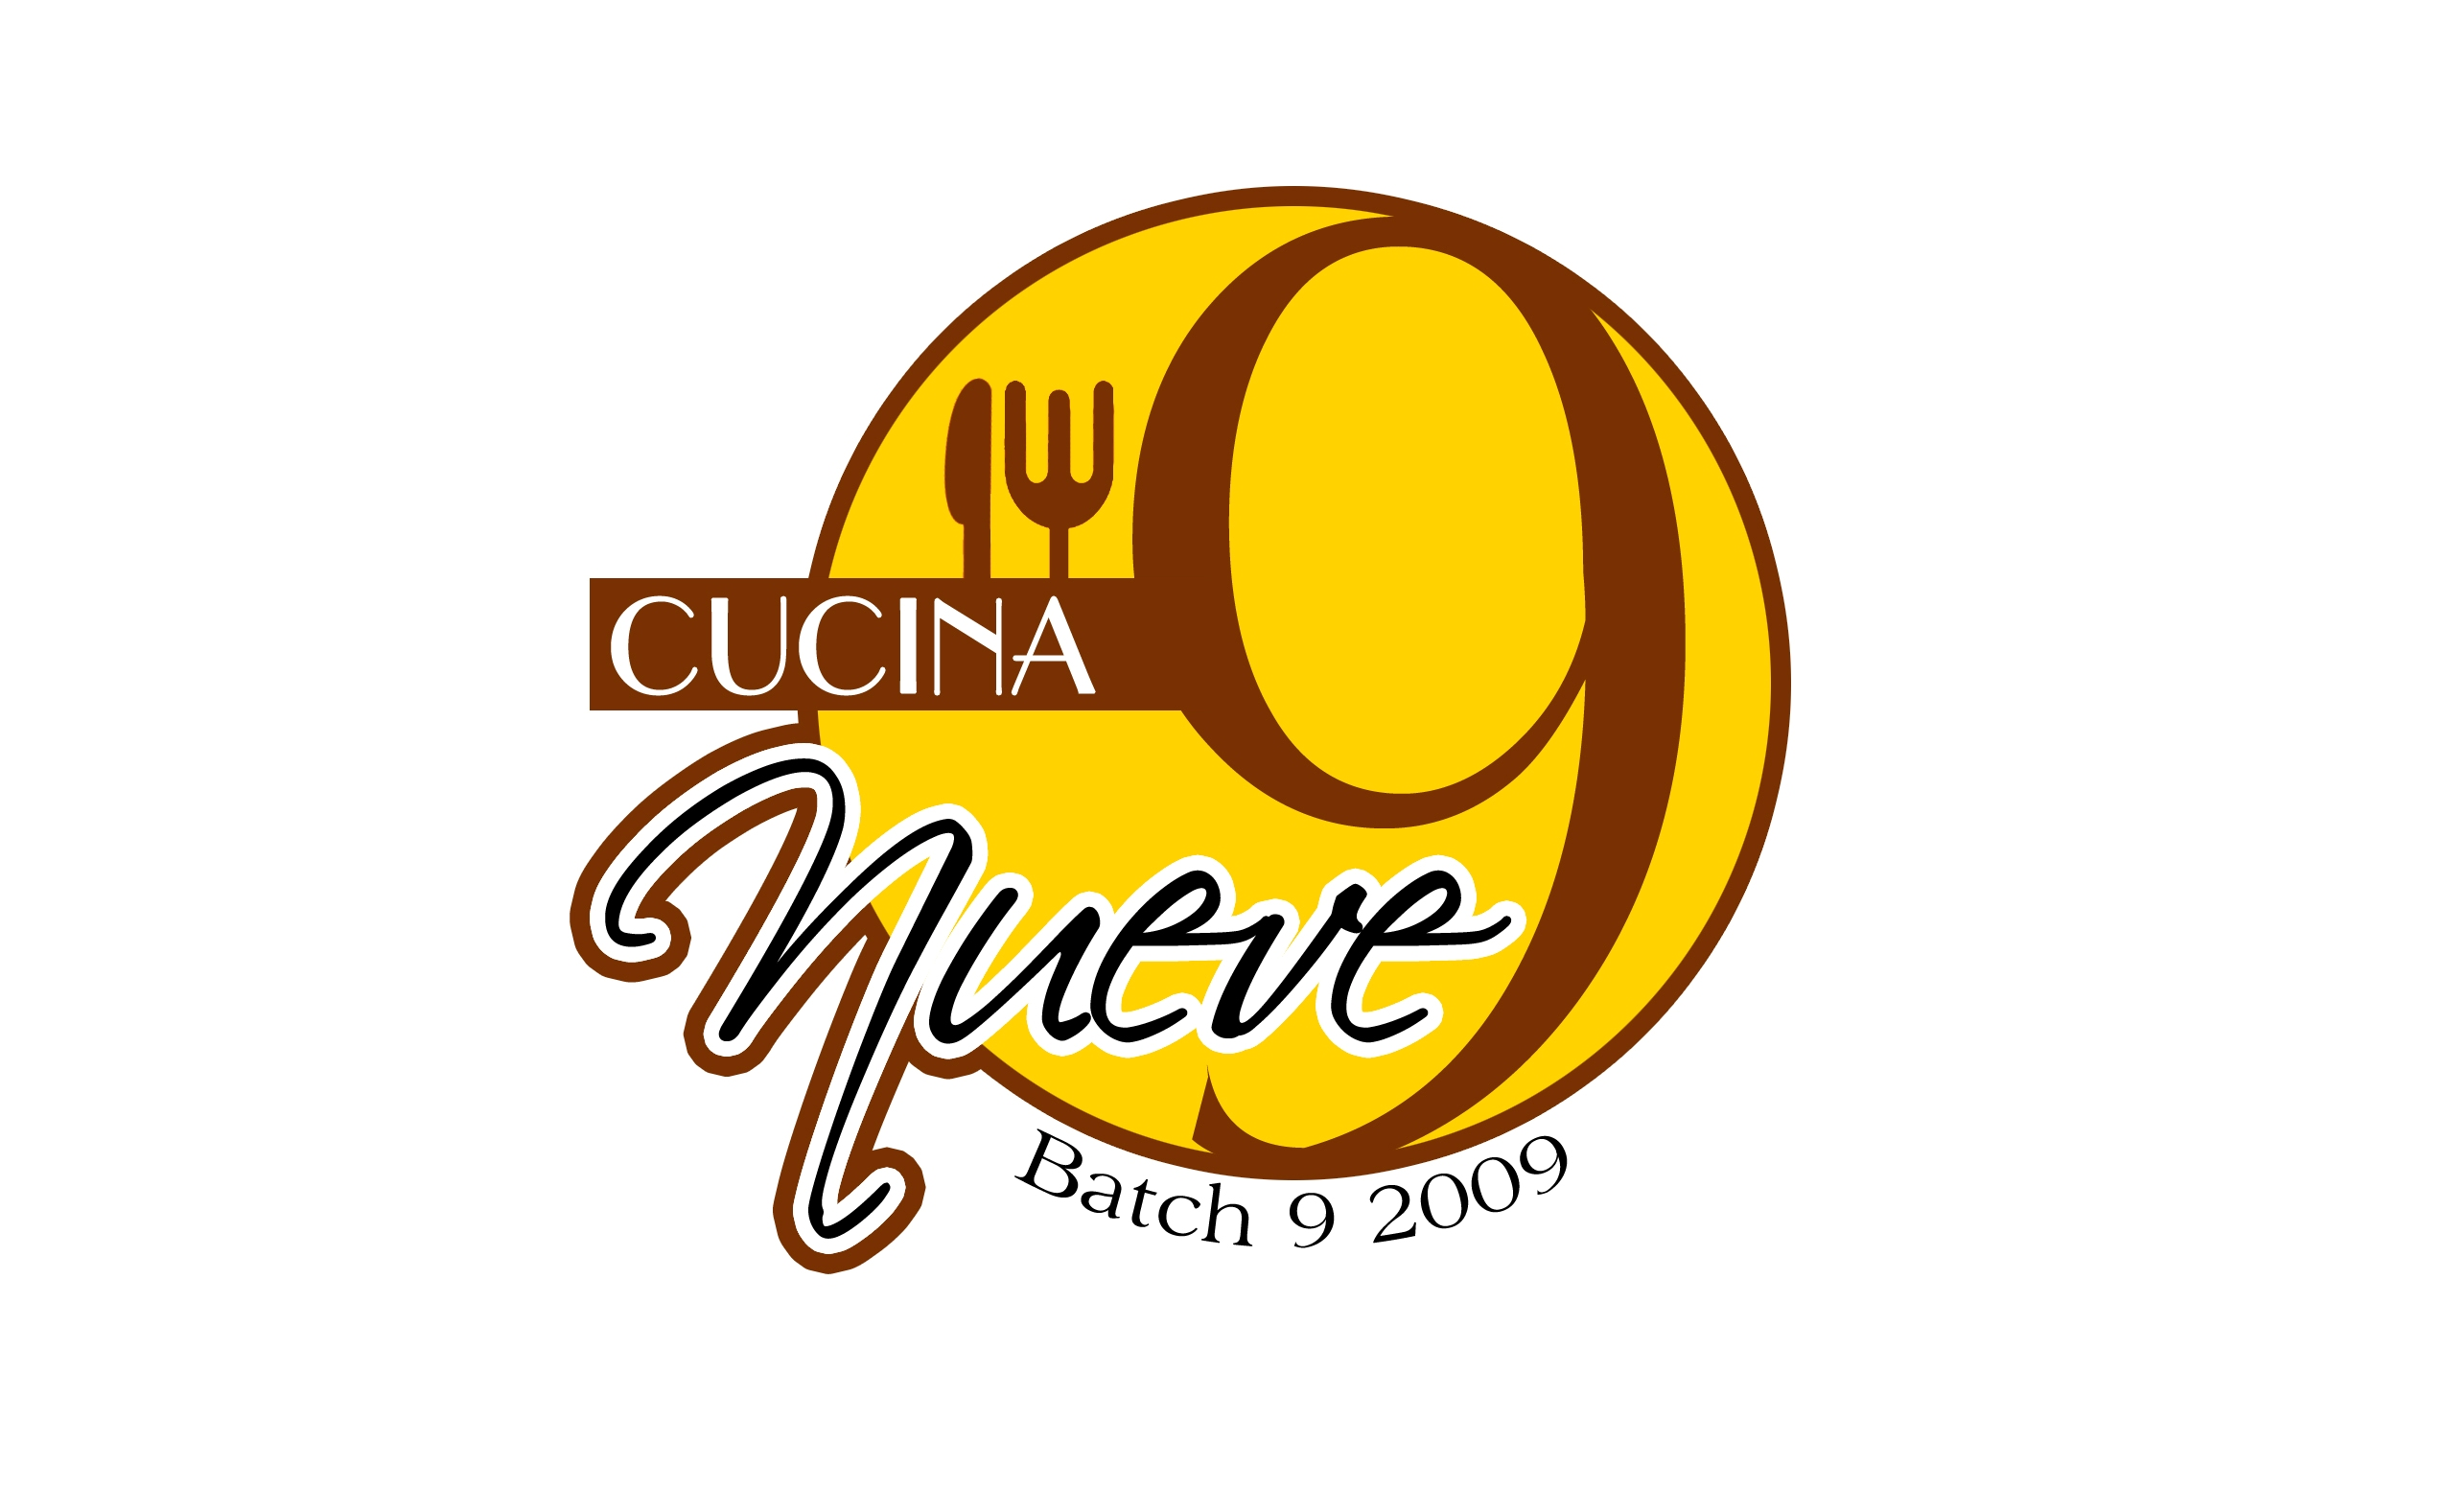 cucina-nueve-super-final